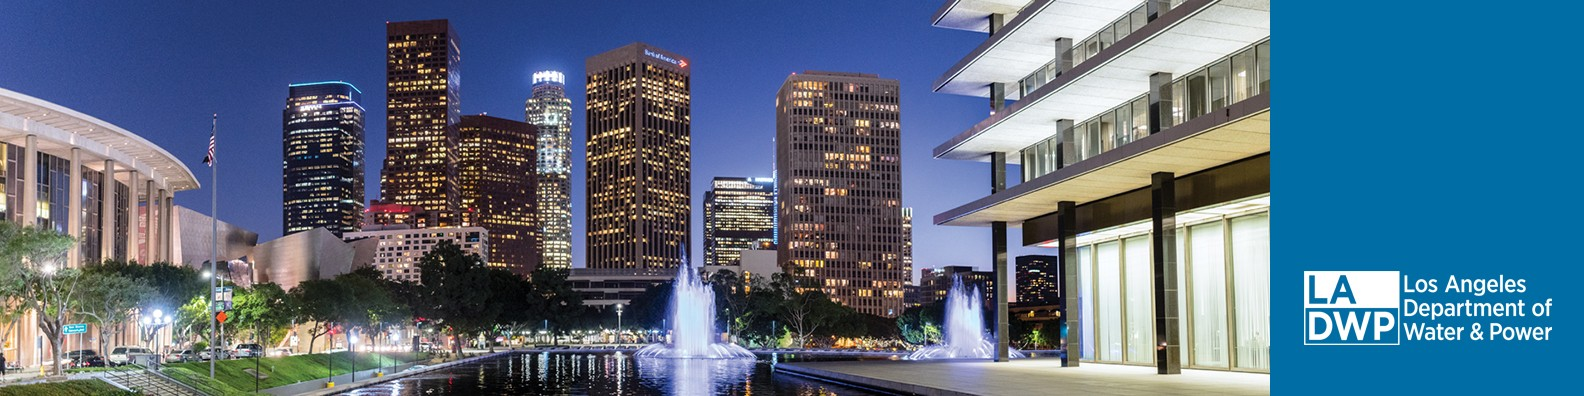 Los Angeles Department of Water and Power | LinkedIn